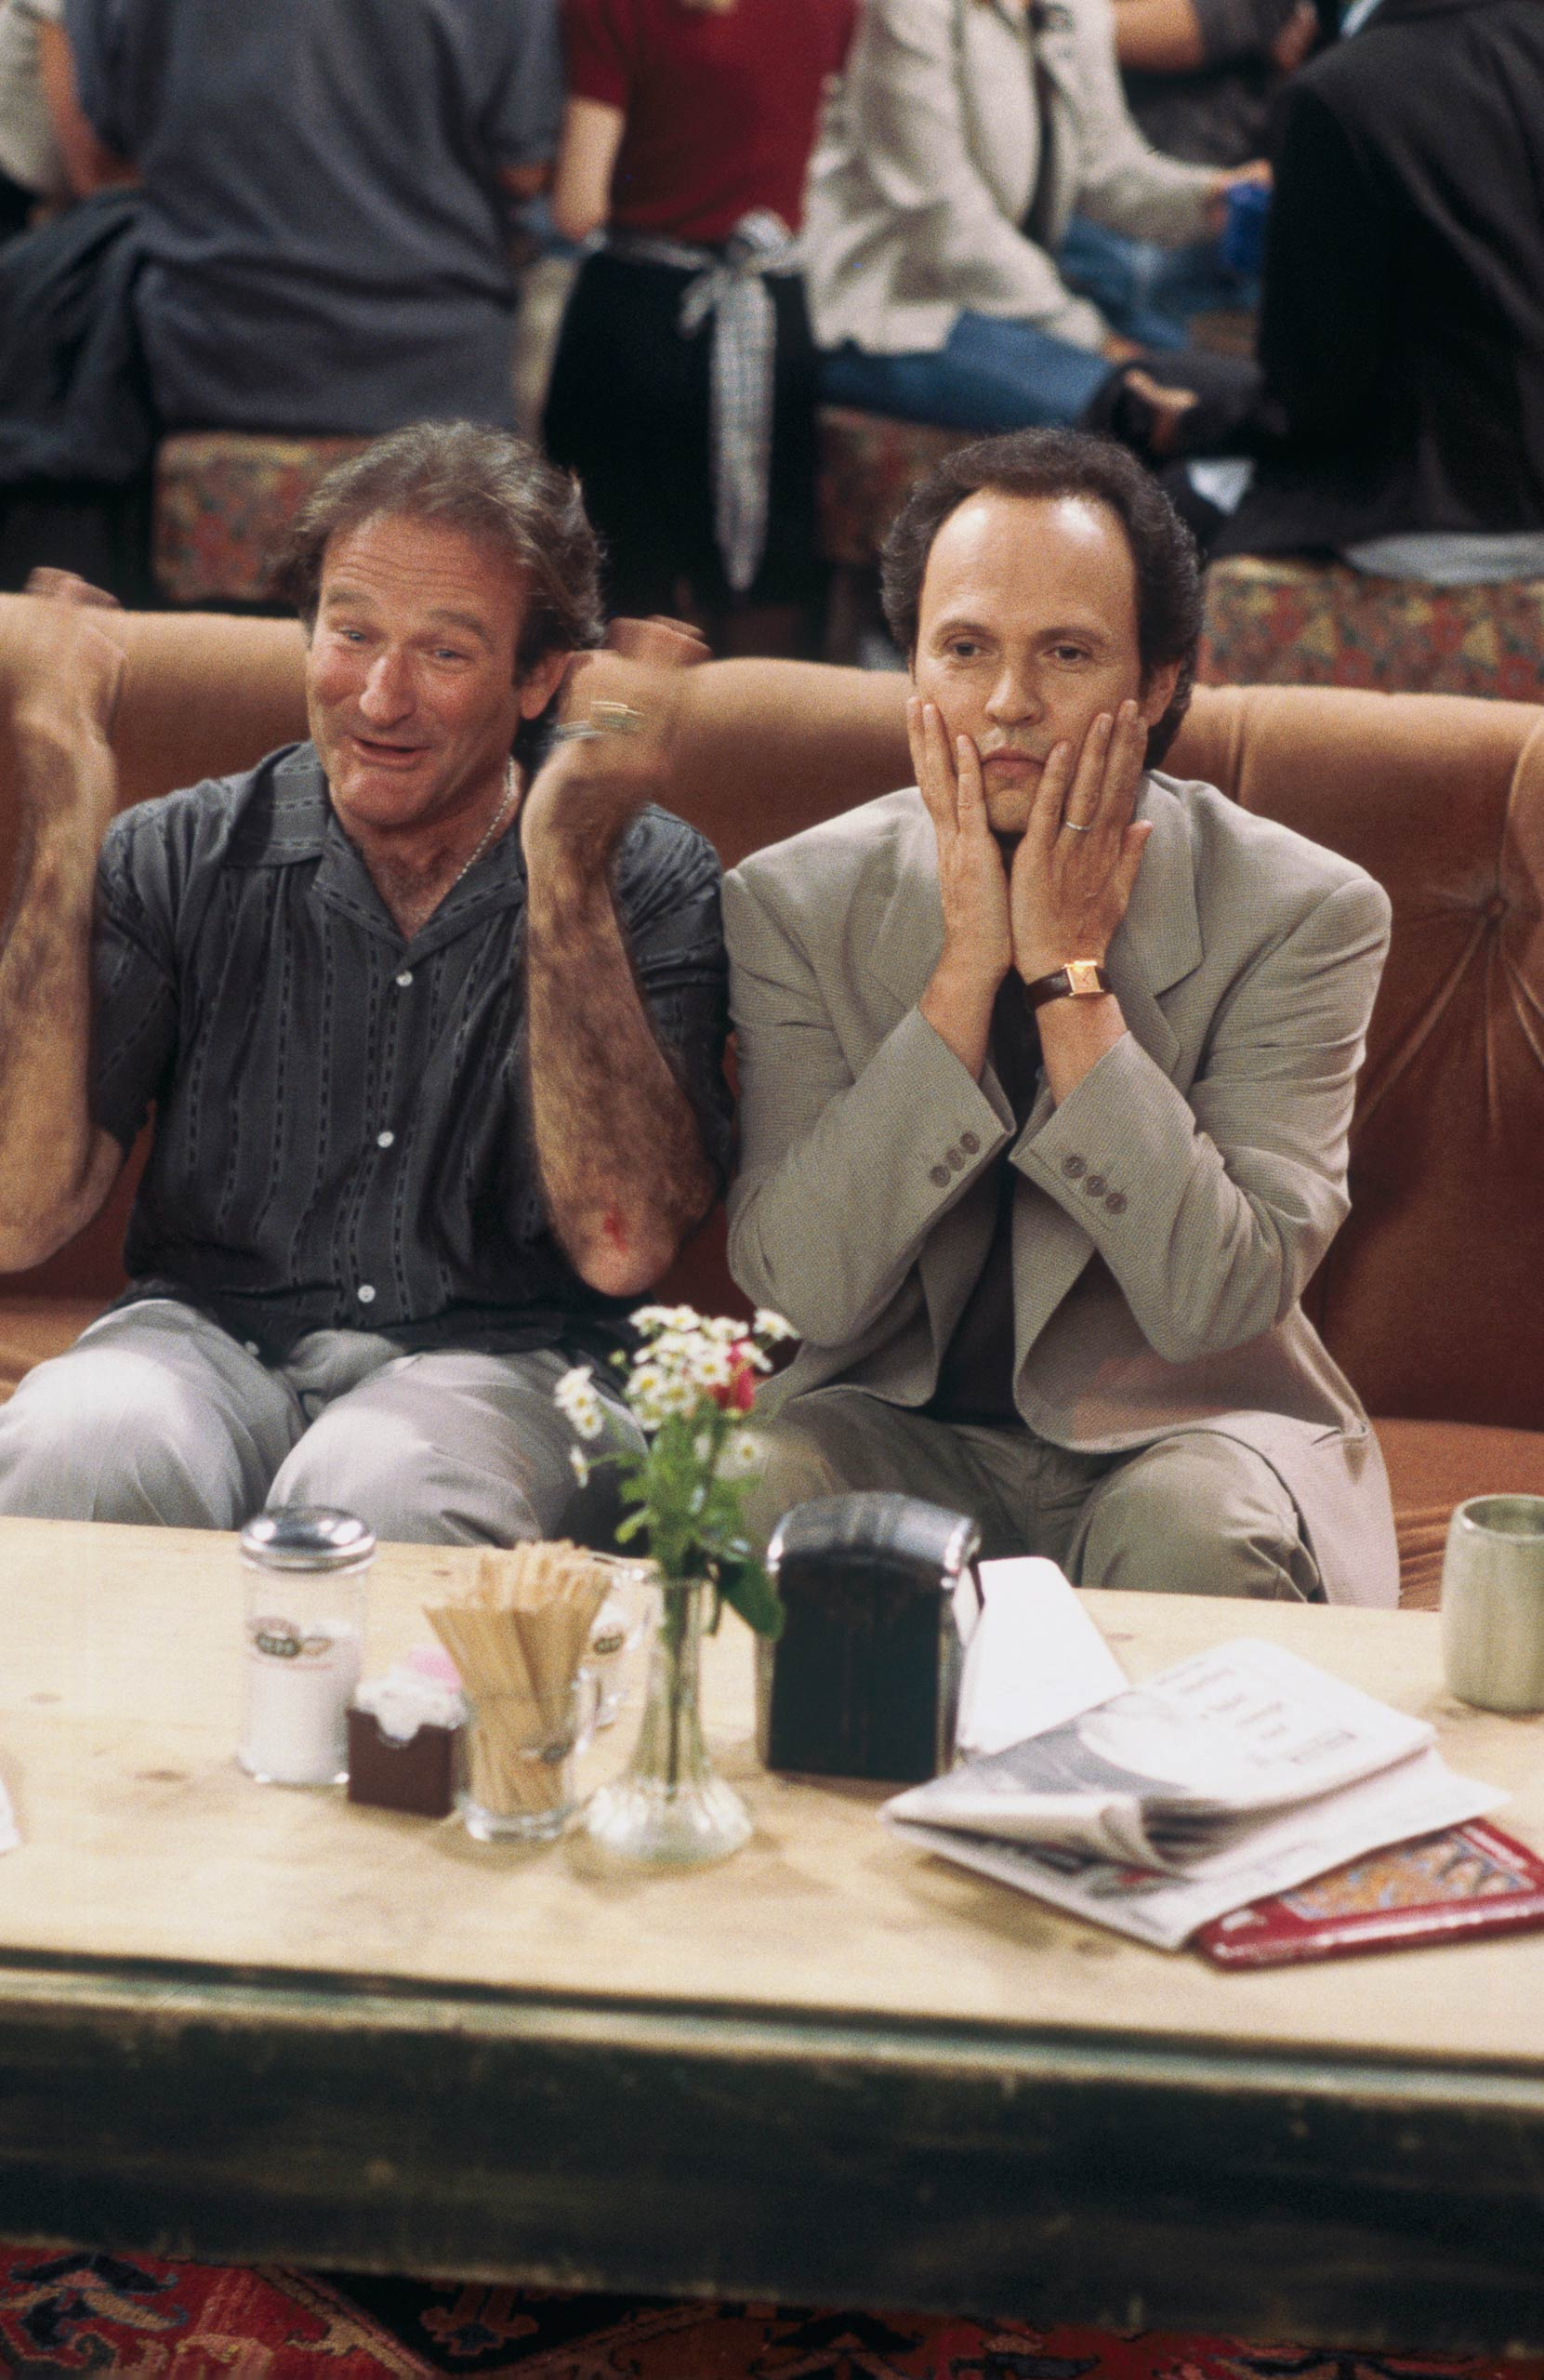 <strong>Billy Crystal</strong> – Crystal plays one of two crazy strangers (with Robin Williams) whose conversation the friends overhear at Central Perk